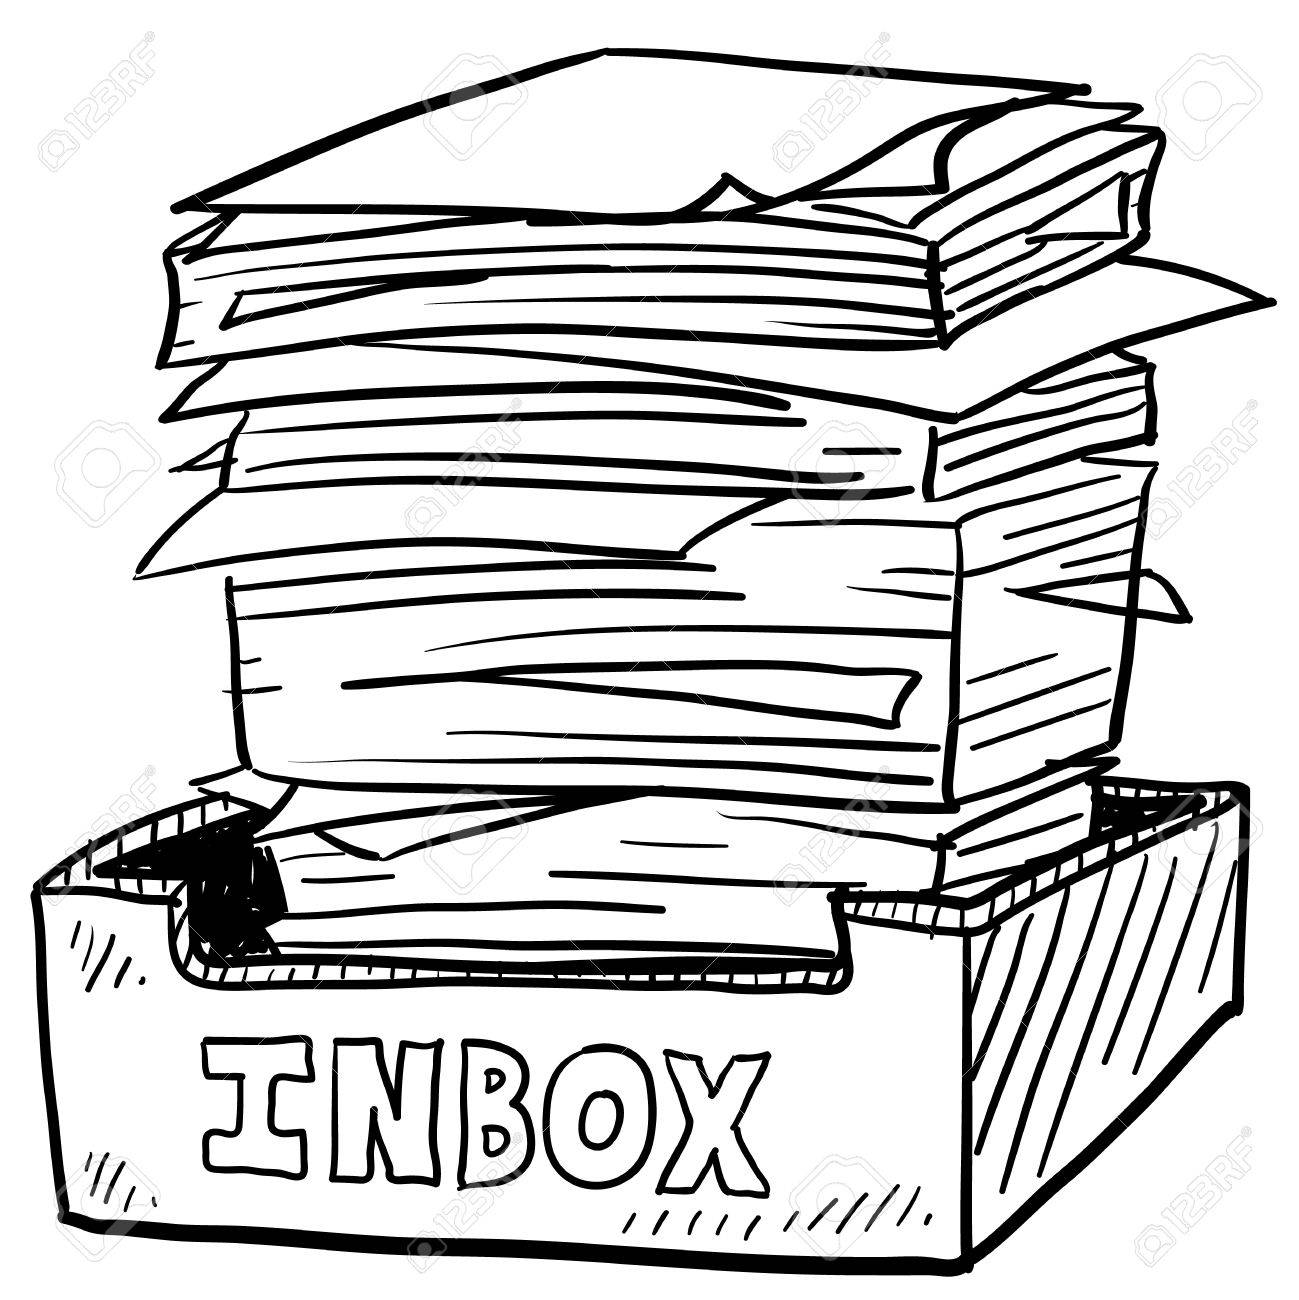 14460862-Doodle-style-inbox-image-with-a